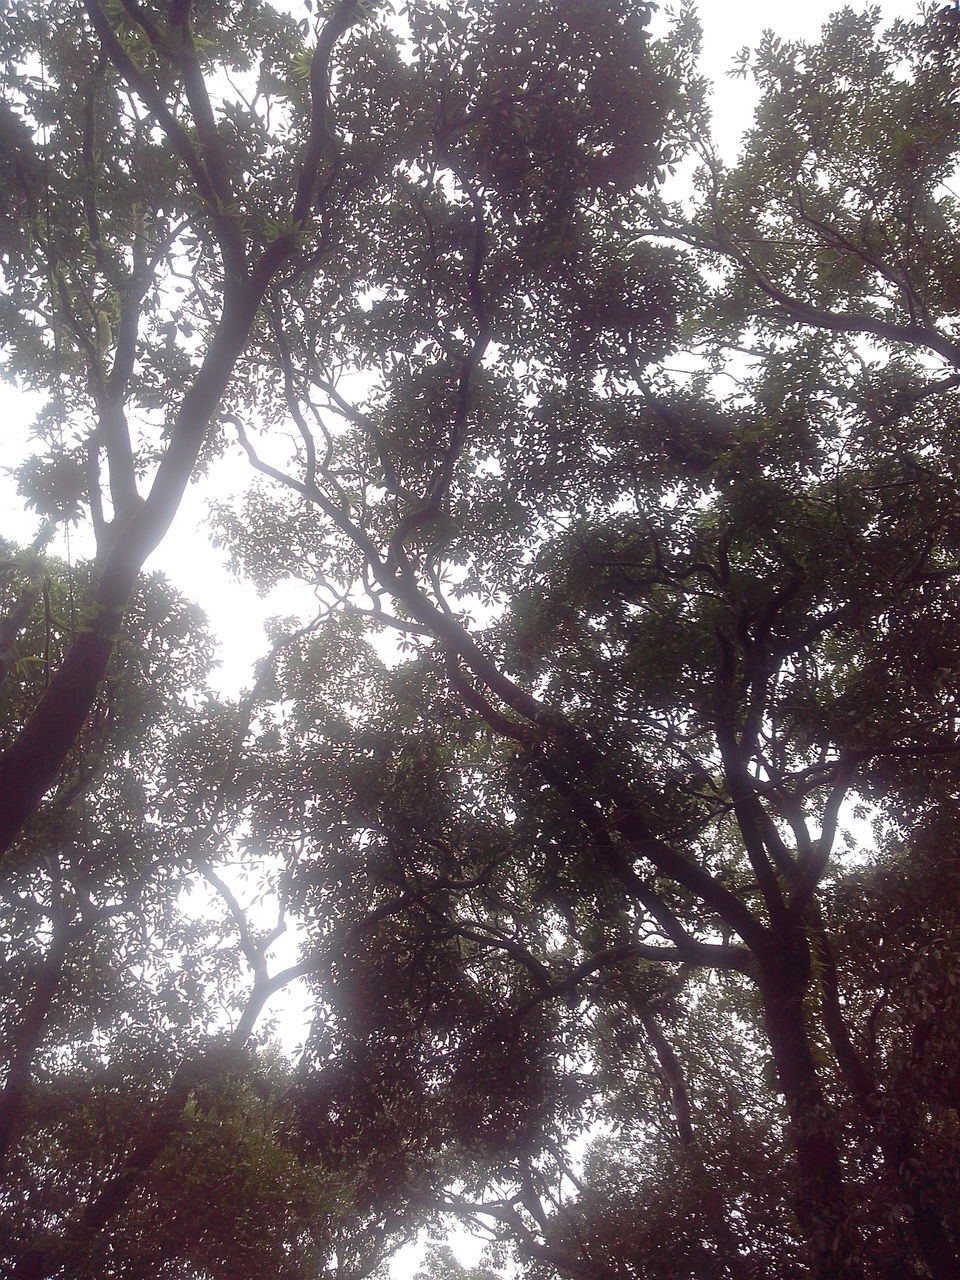 tree, low angle view, nature, branch, growth, beauty in nature, day, tranquility, outdoors, forest, no people, tranquil scene, scenics, backgrounds, tree trunk, sky